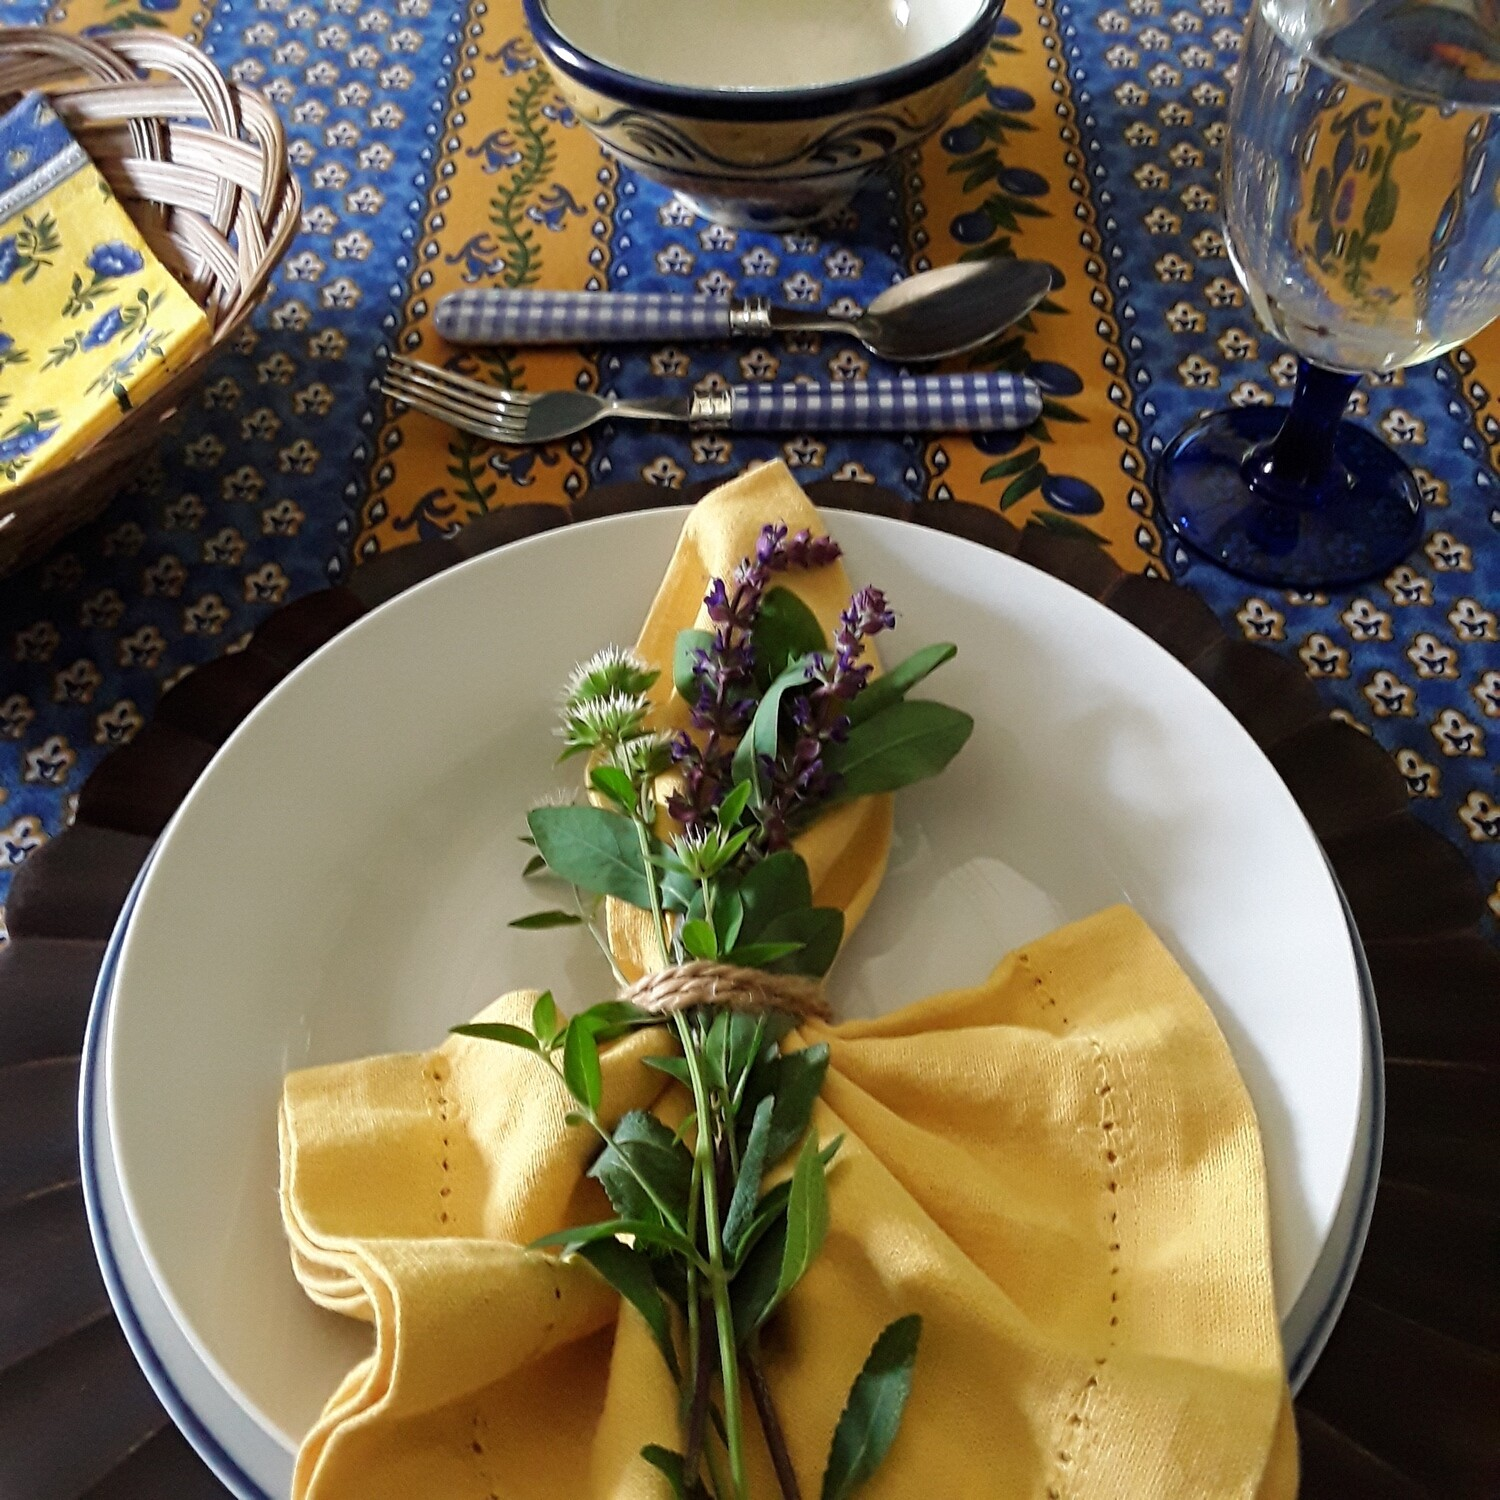 Vintage Blue and Yellow French Provençal Tablecloth